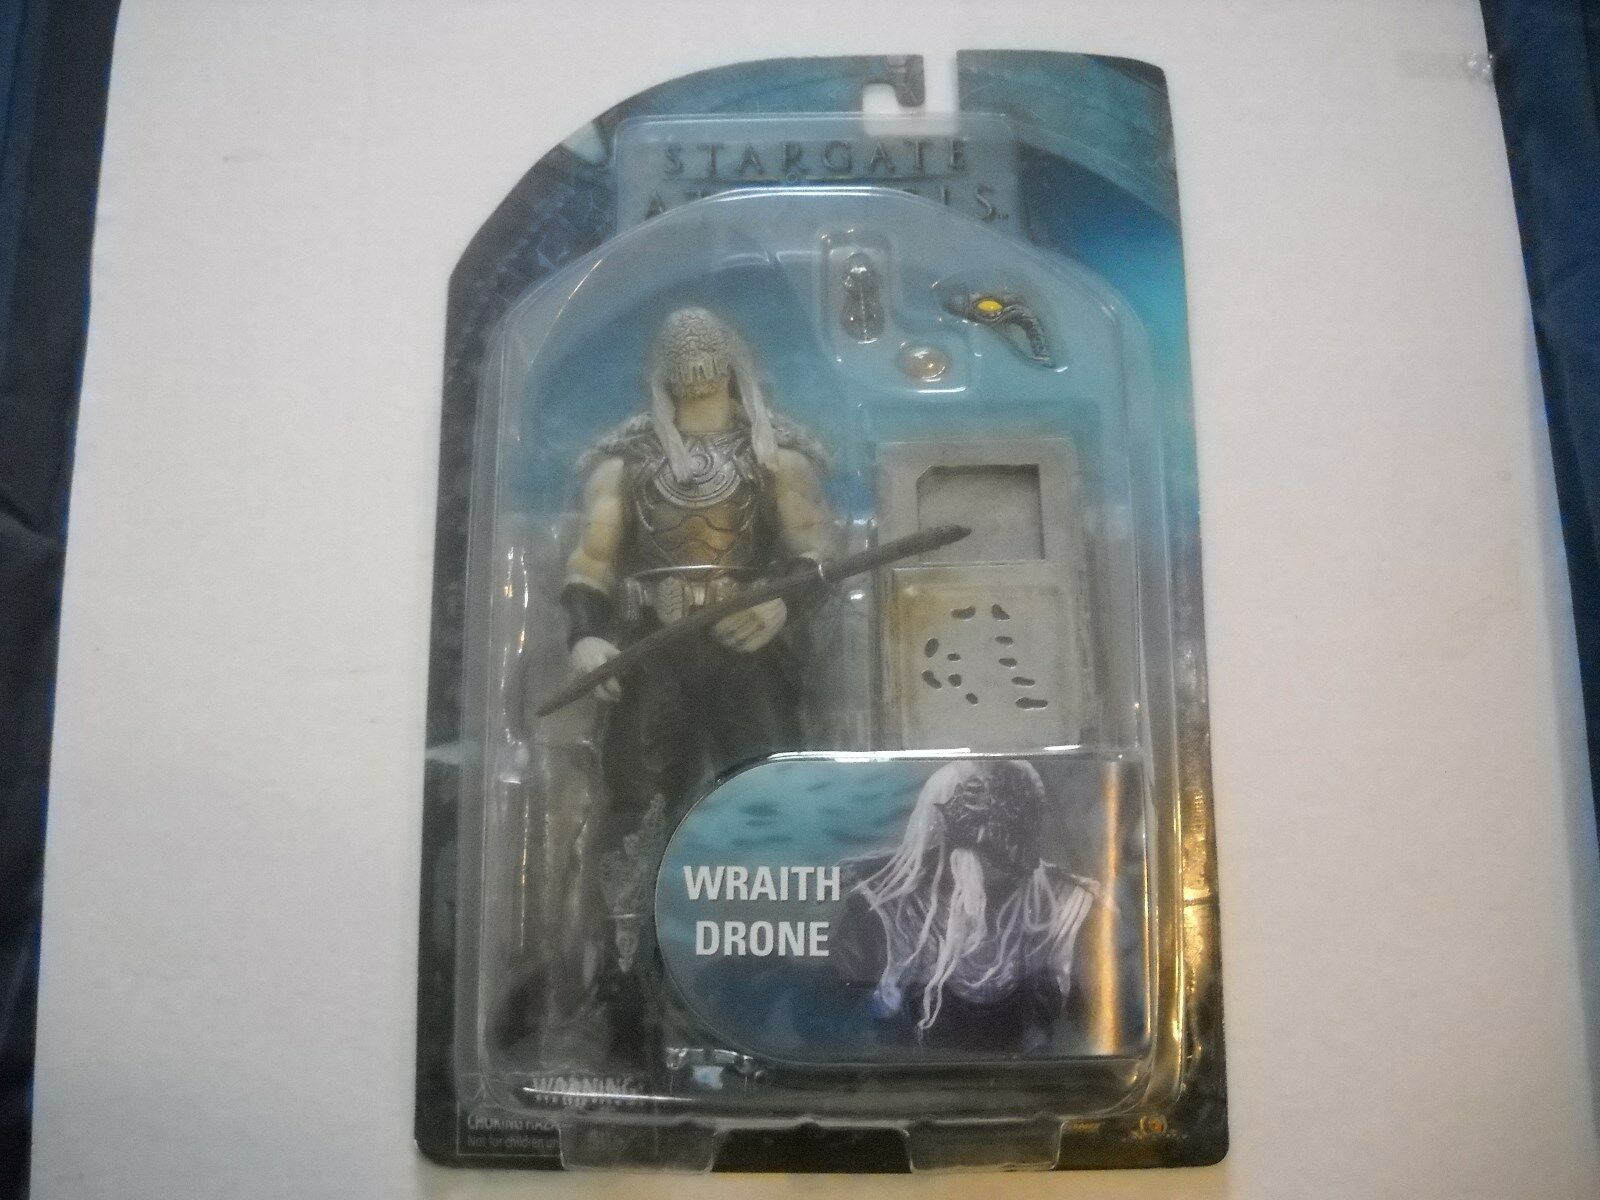 Diamond Select Stargate Atlantis Series Wraith Drone Action Figure